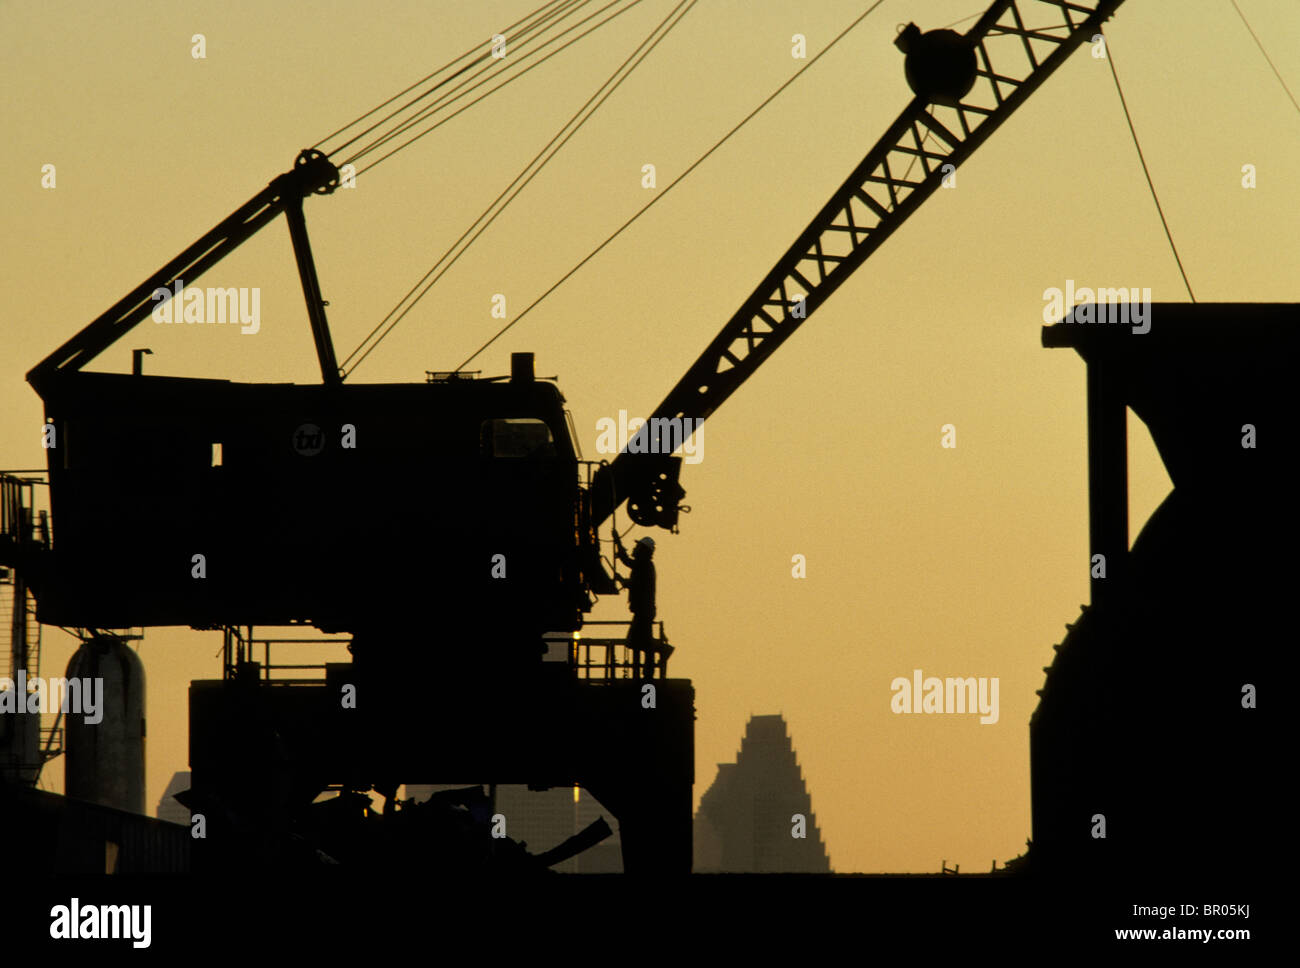 Silhouette of a man near a large crane in a metal scrap yard. - Stock Image